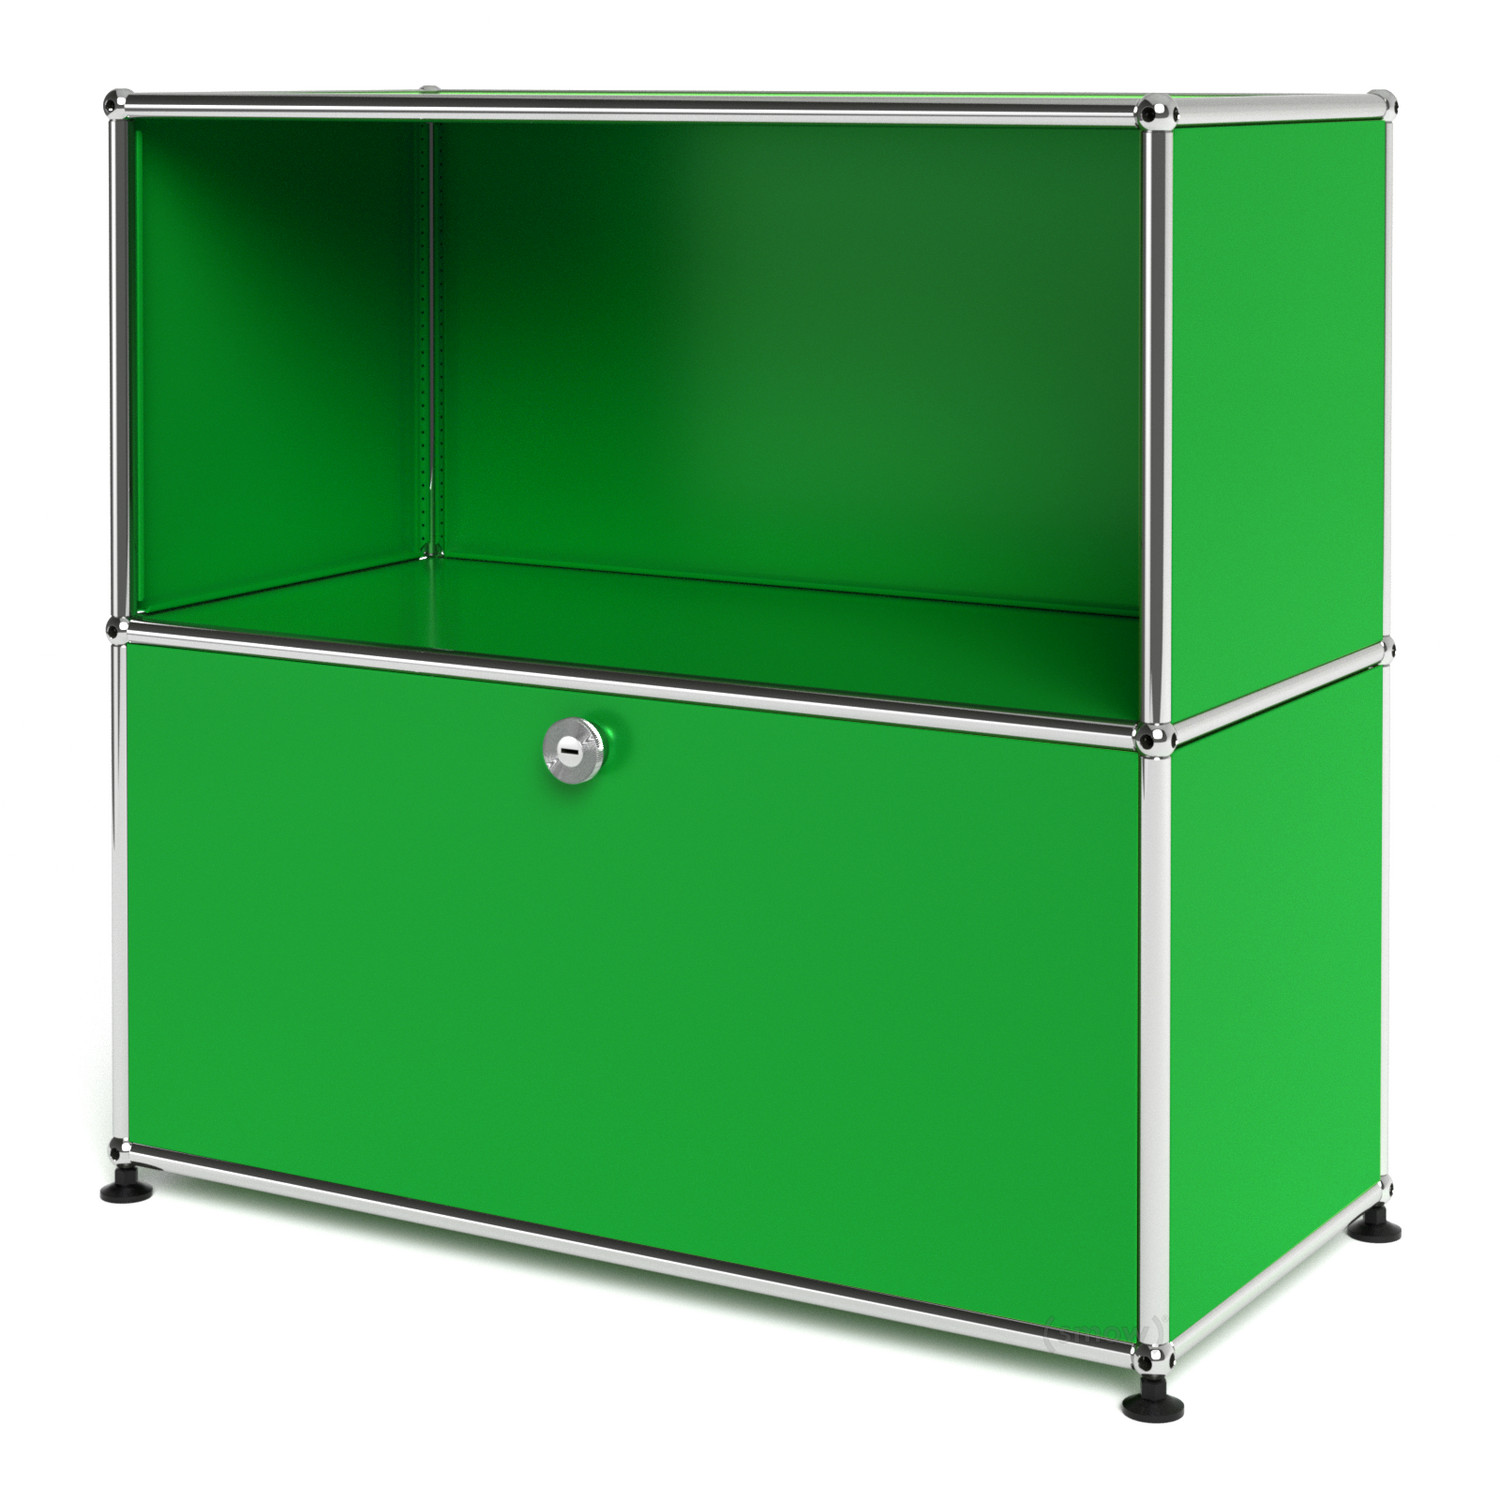 Usm haller sideboard m with 1 drop down door usm green by for Sideboard usm